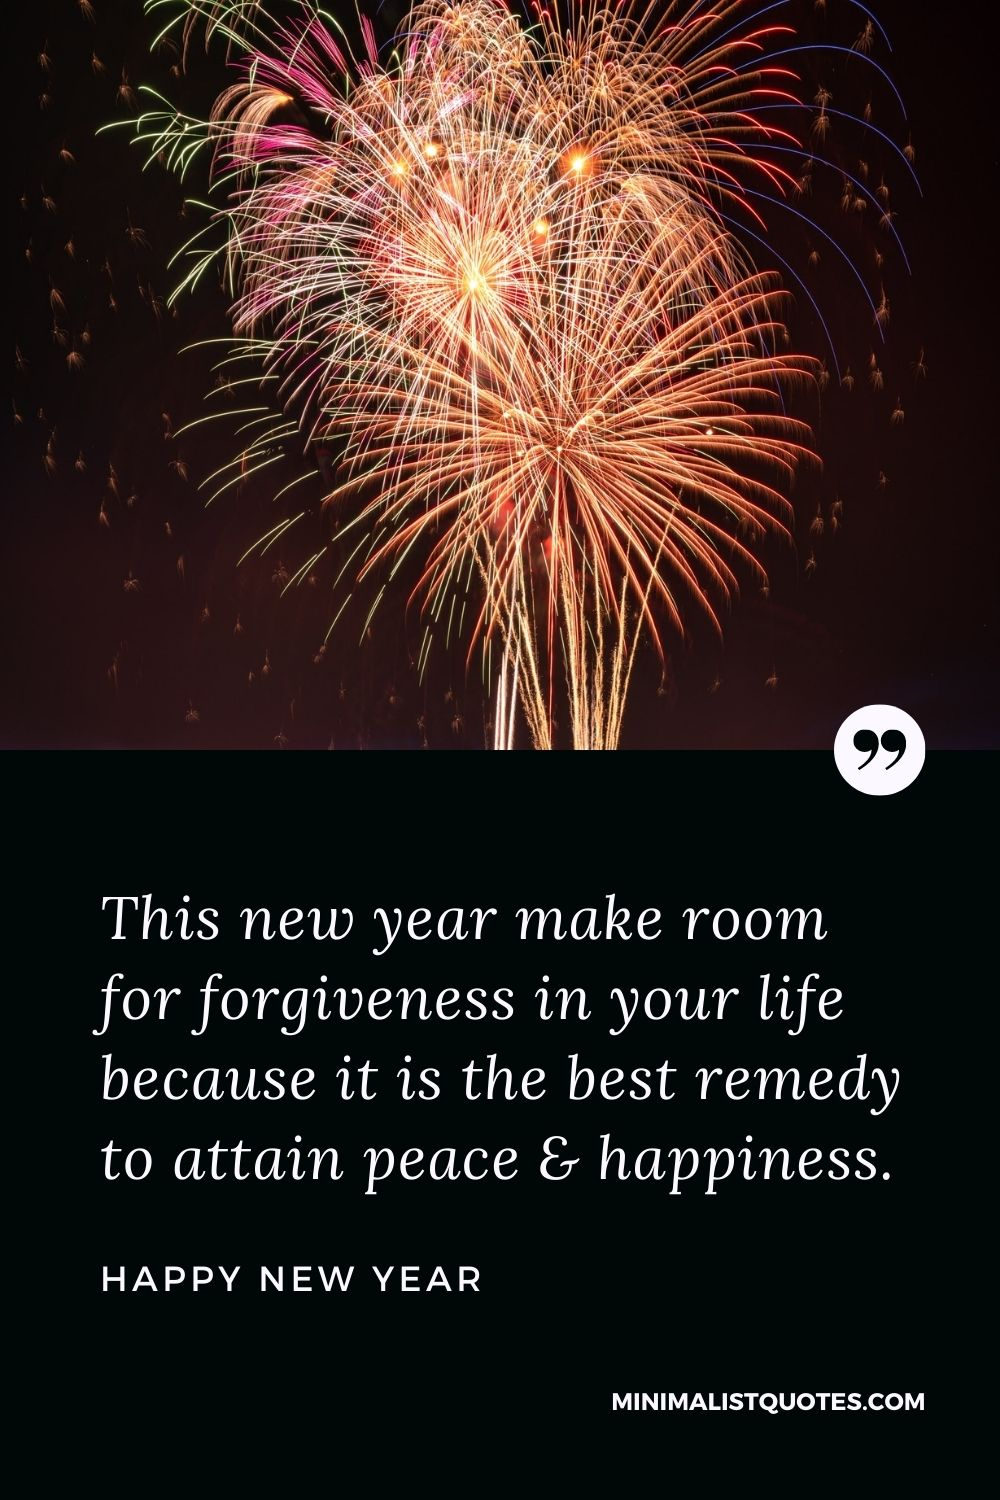 New Year Wish - This new year make room for forgiveness in your life because itis the best remedy to attain peace & happiness.